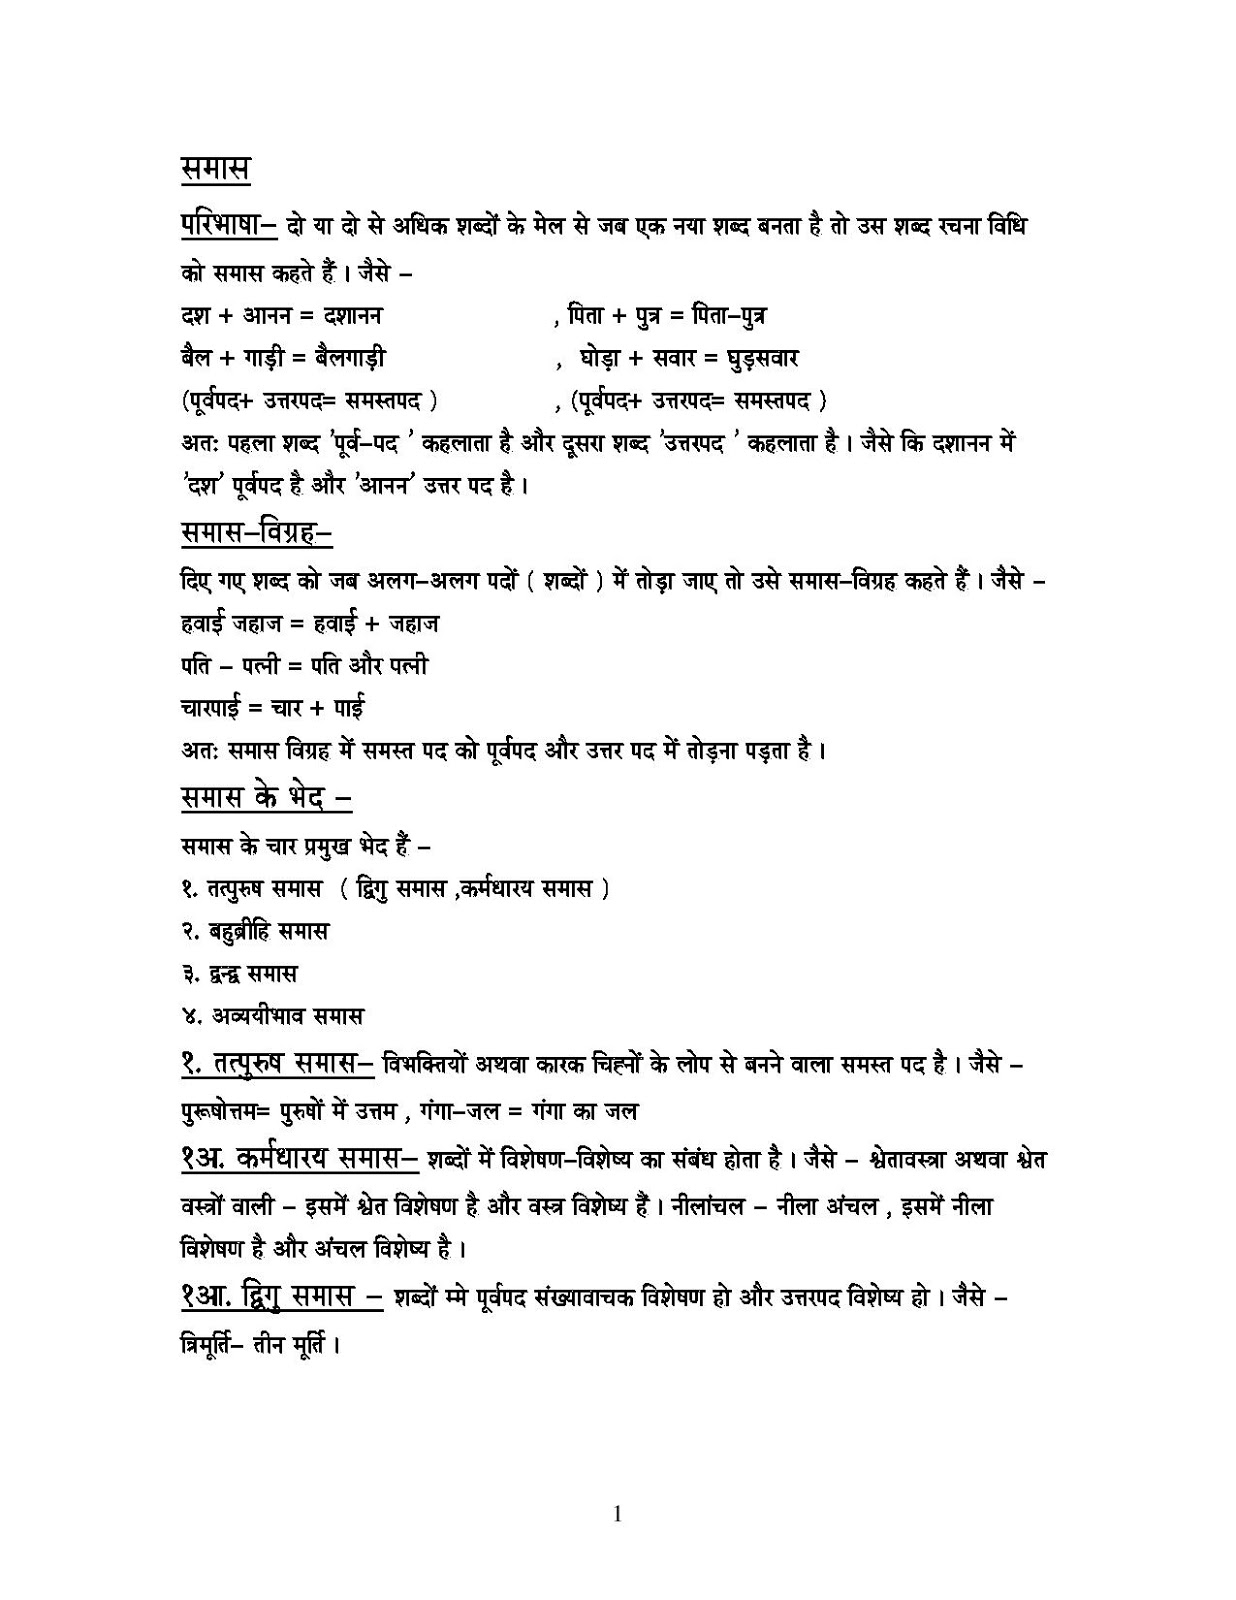 Hindi Grammar Work Sheet Collection For Classes 5 6 7 Amp 8 Samas Work Sheet For Cbse And Igcse